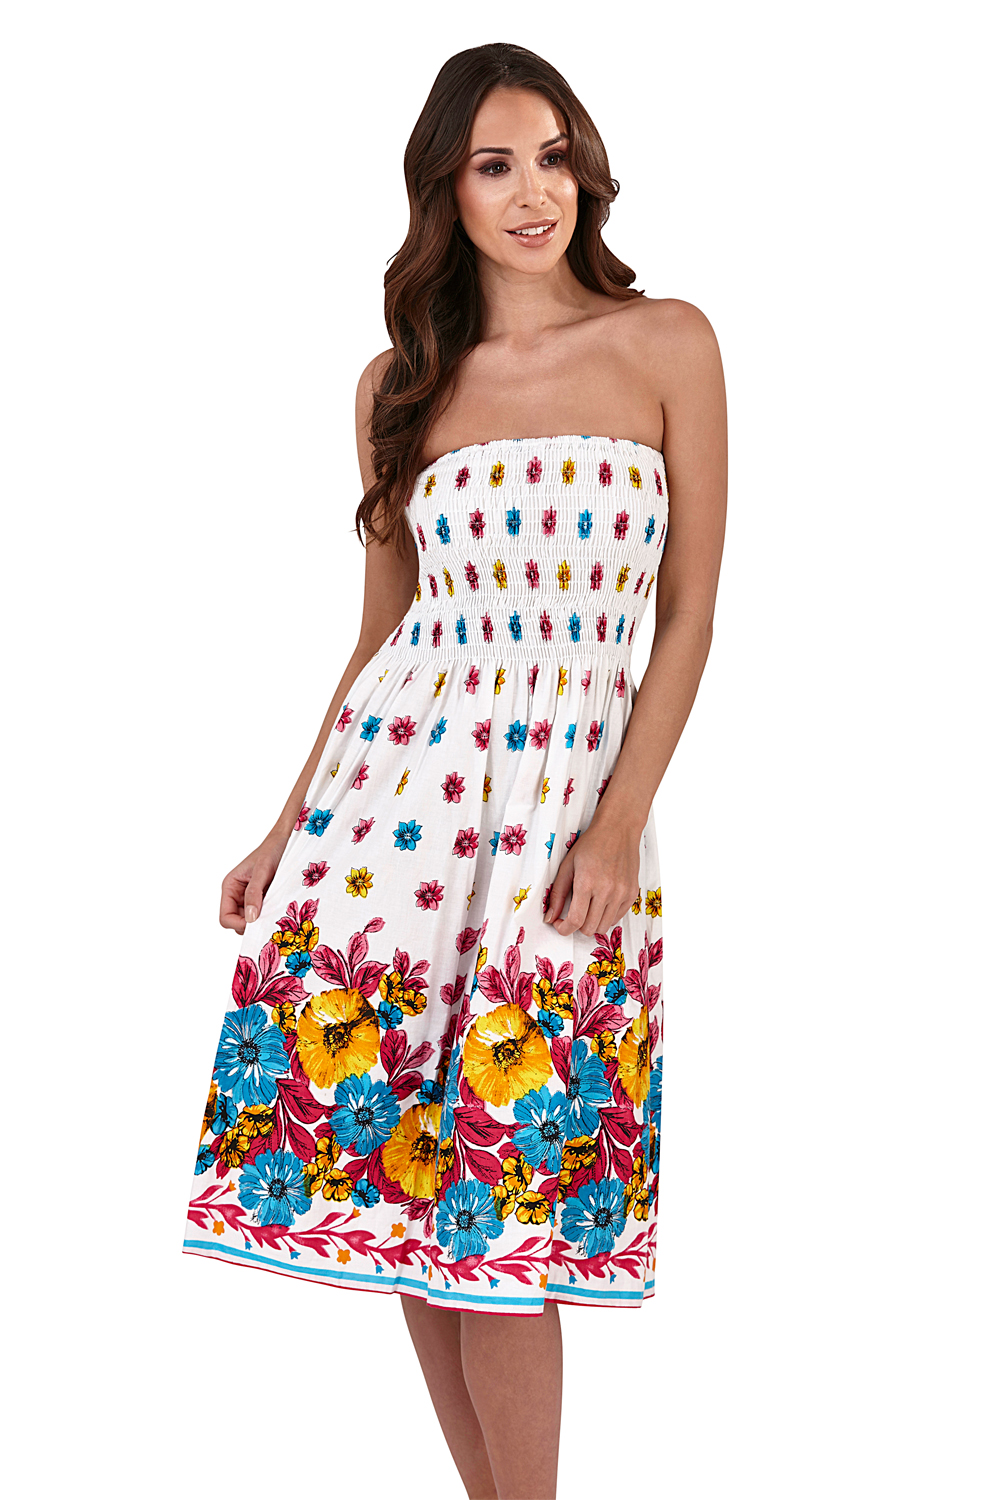 Pistachio-Womens-Patterned-3-In-1-Dresses-Ladies-New-Cotton-Summer-Beach-Skirts thumbnail 5